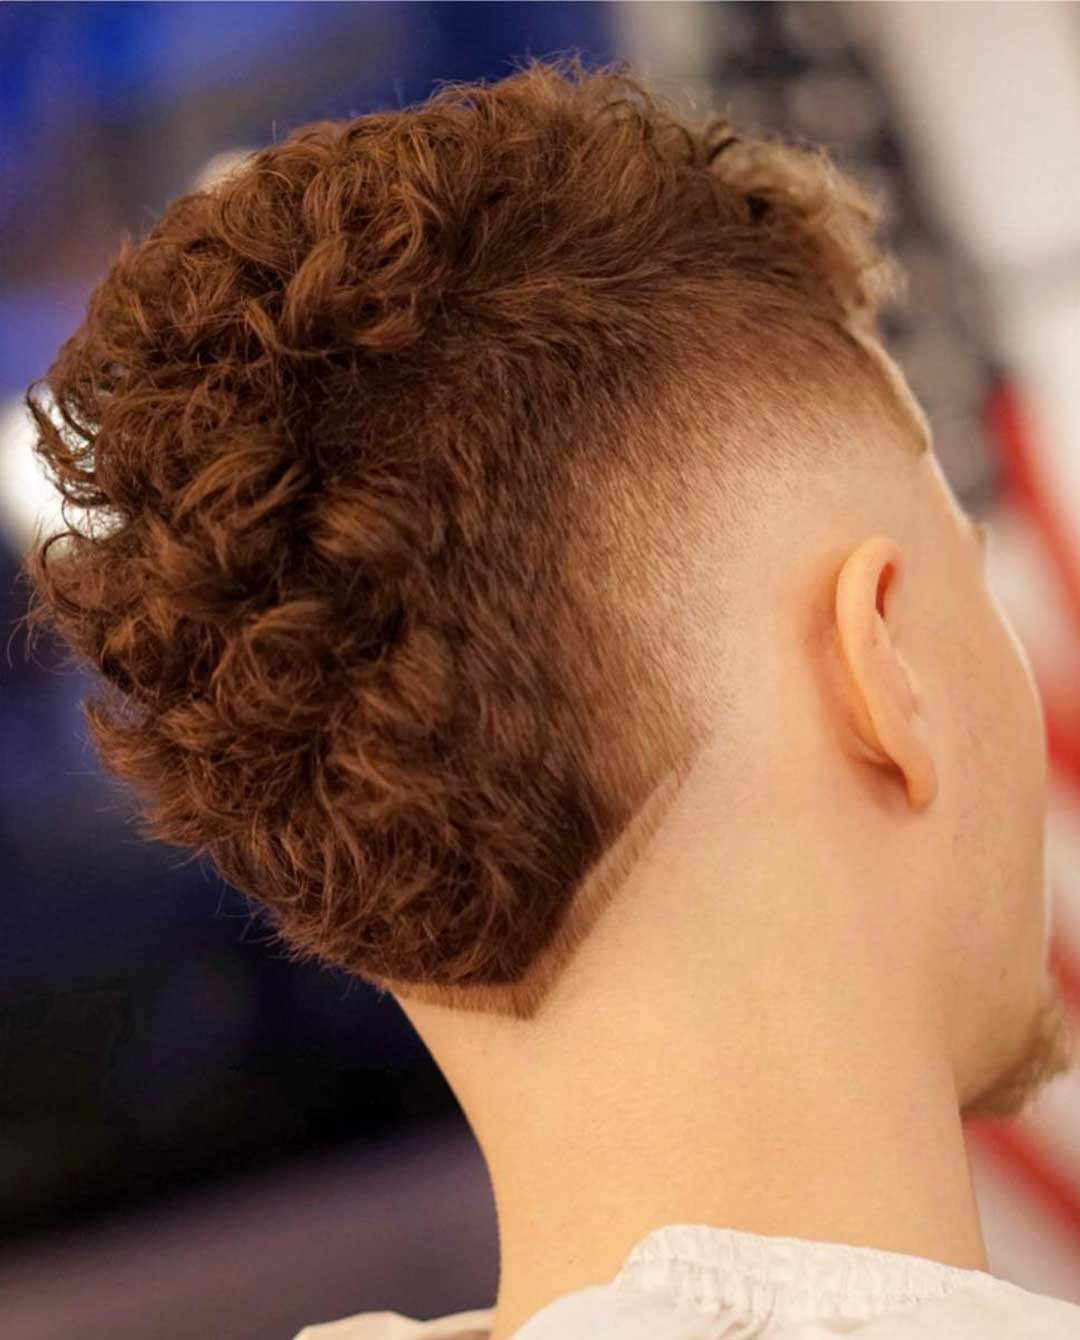 Curly Hair with V Shaped Neckline